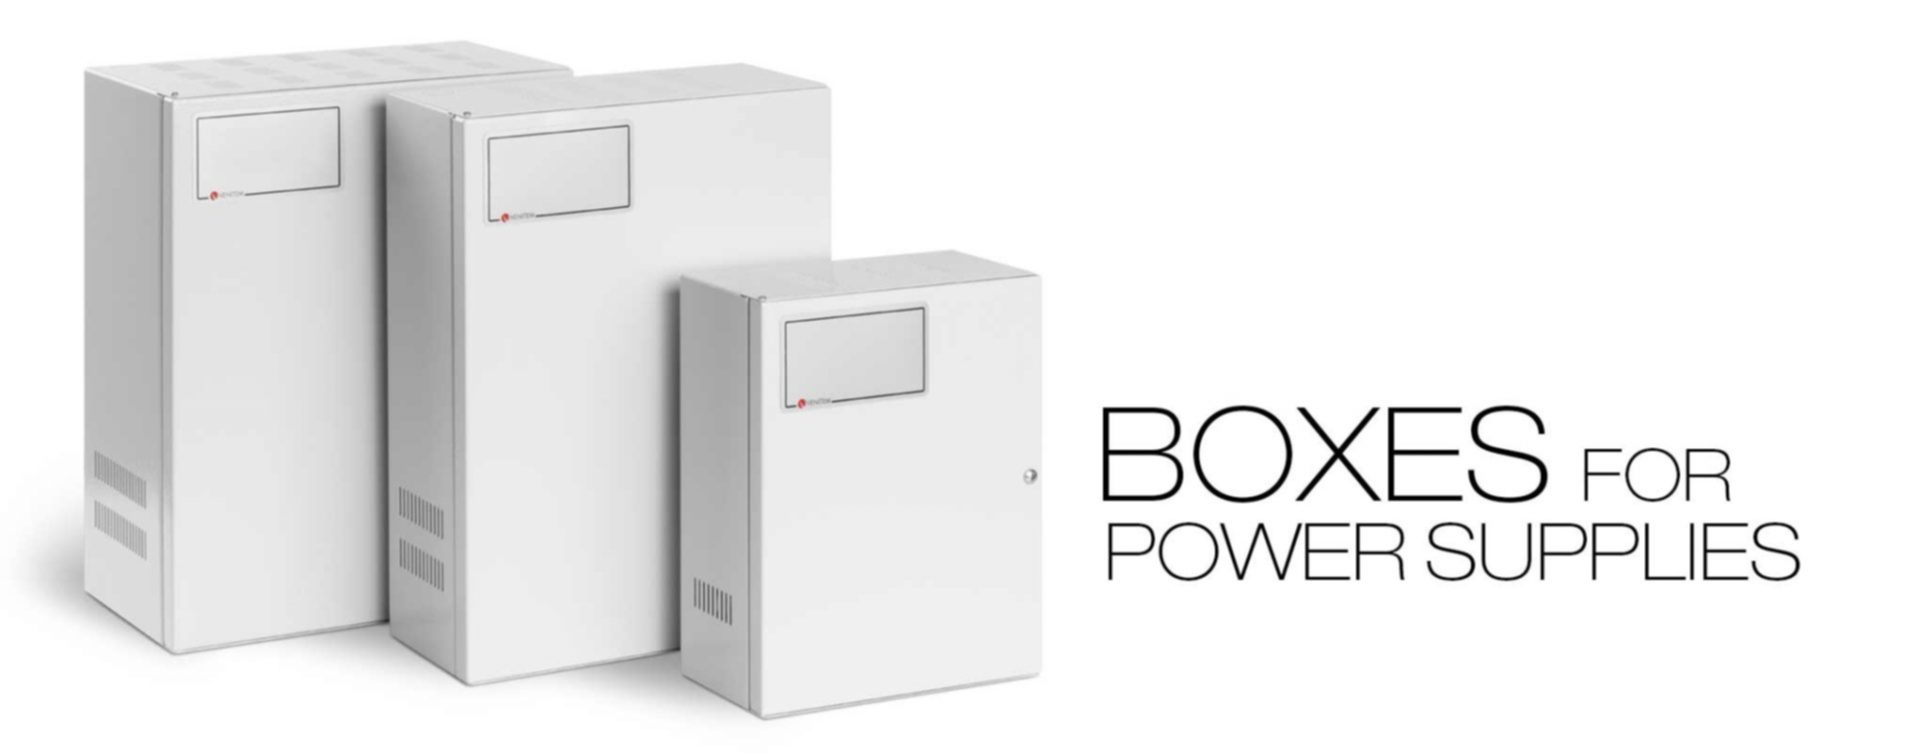 Boxes for power supplies